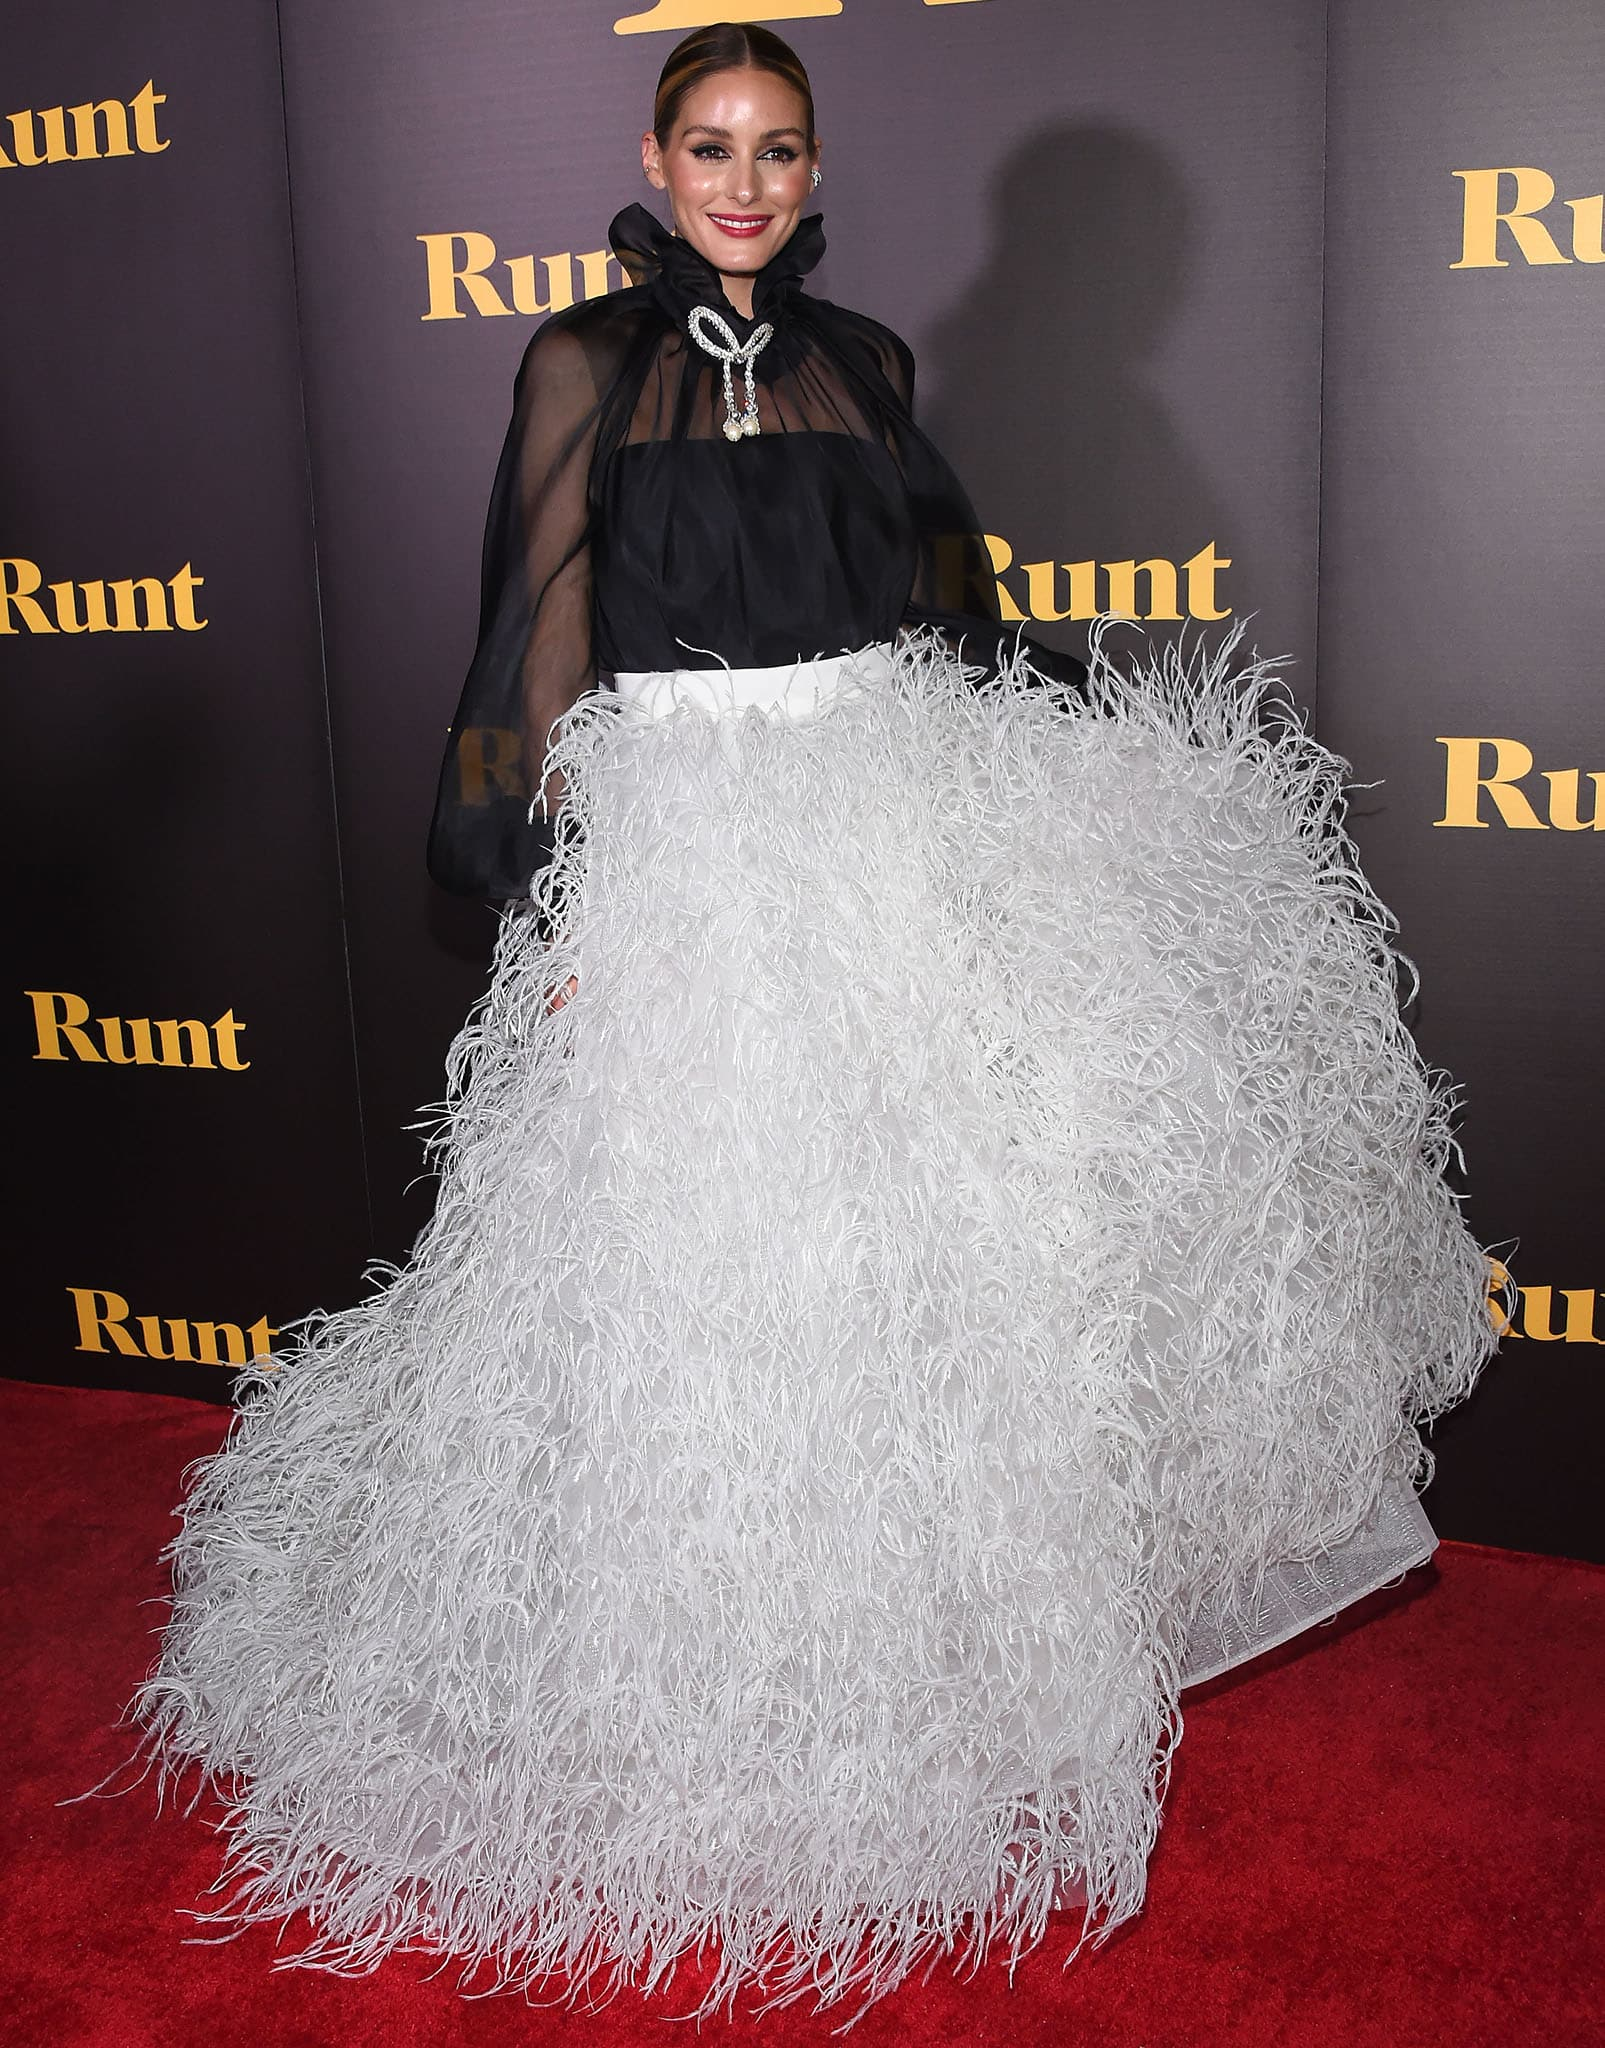 Olivia Palermo attends the Runt Los Angeles premiere at TCL Chinese 6 Theater in Hollywood on September 23, 2021